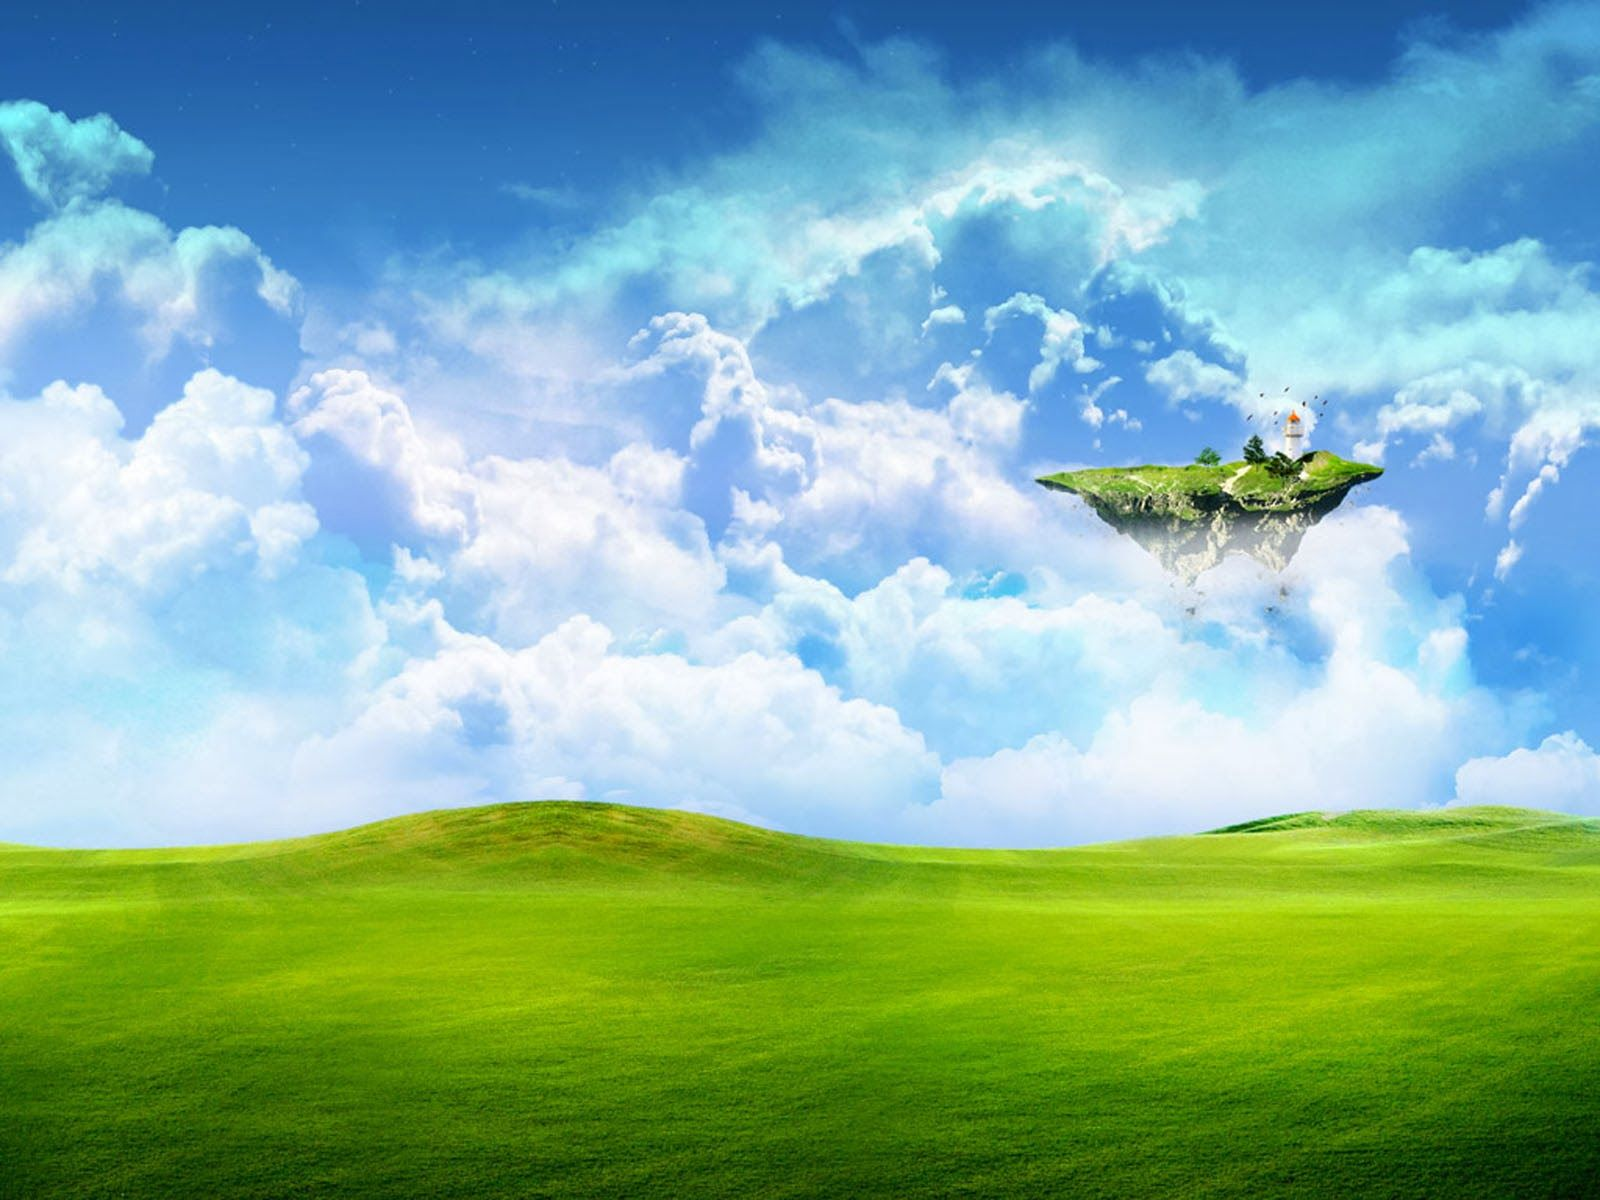 Heaven Wallpaper Full HDQ Pictures And Wallpapers Showcase 1600x1200 37